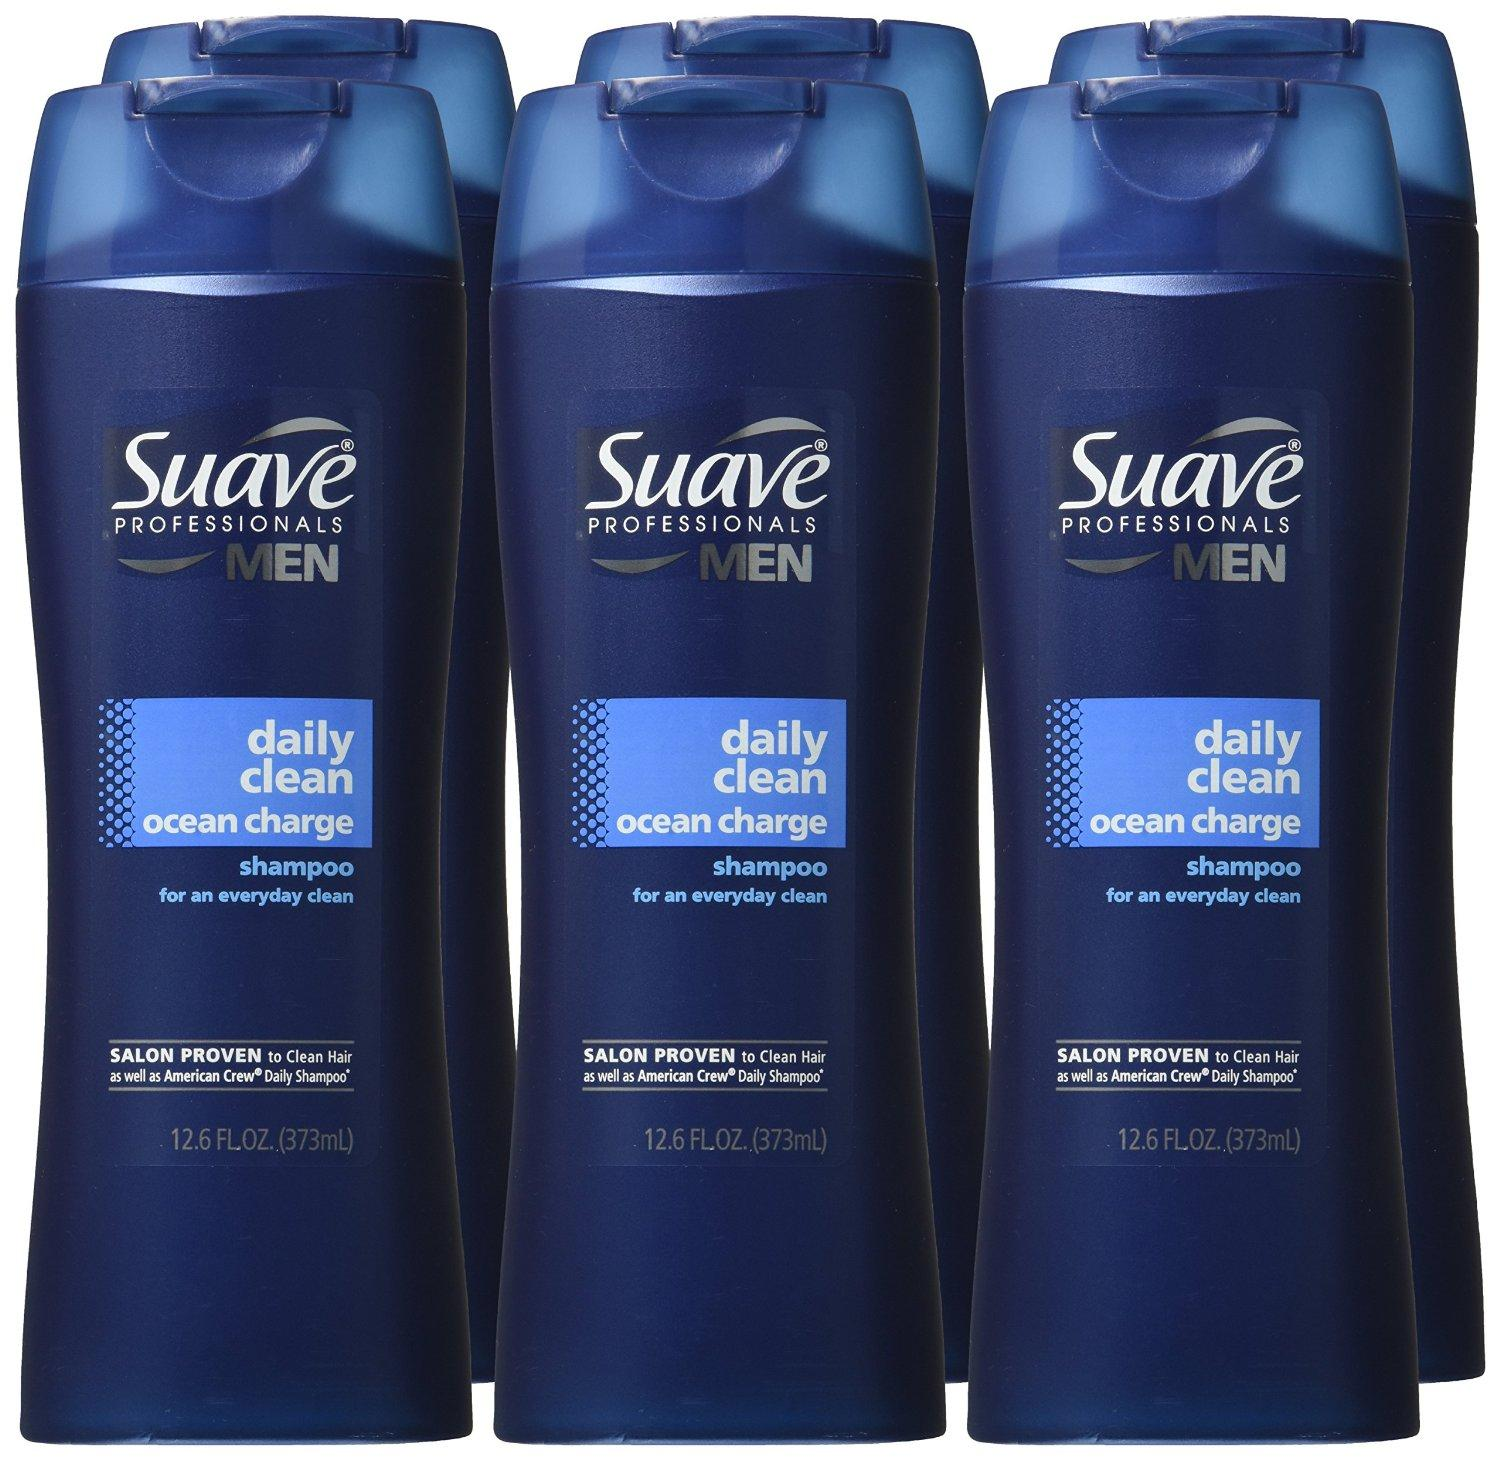 $9.03 Suave Professionals Men Shampoo, Daily Clean Ocean Charge 12.6 oz (Pack of 6)